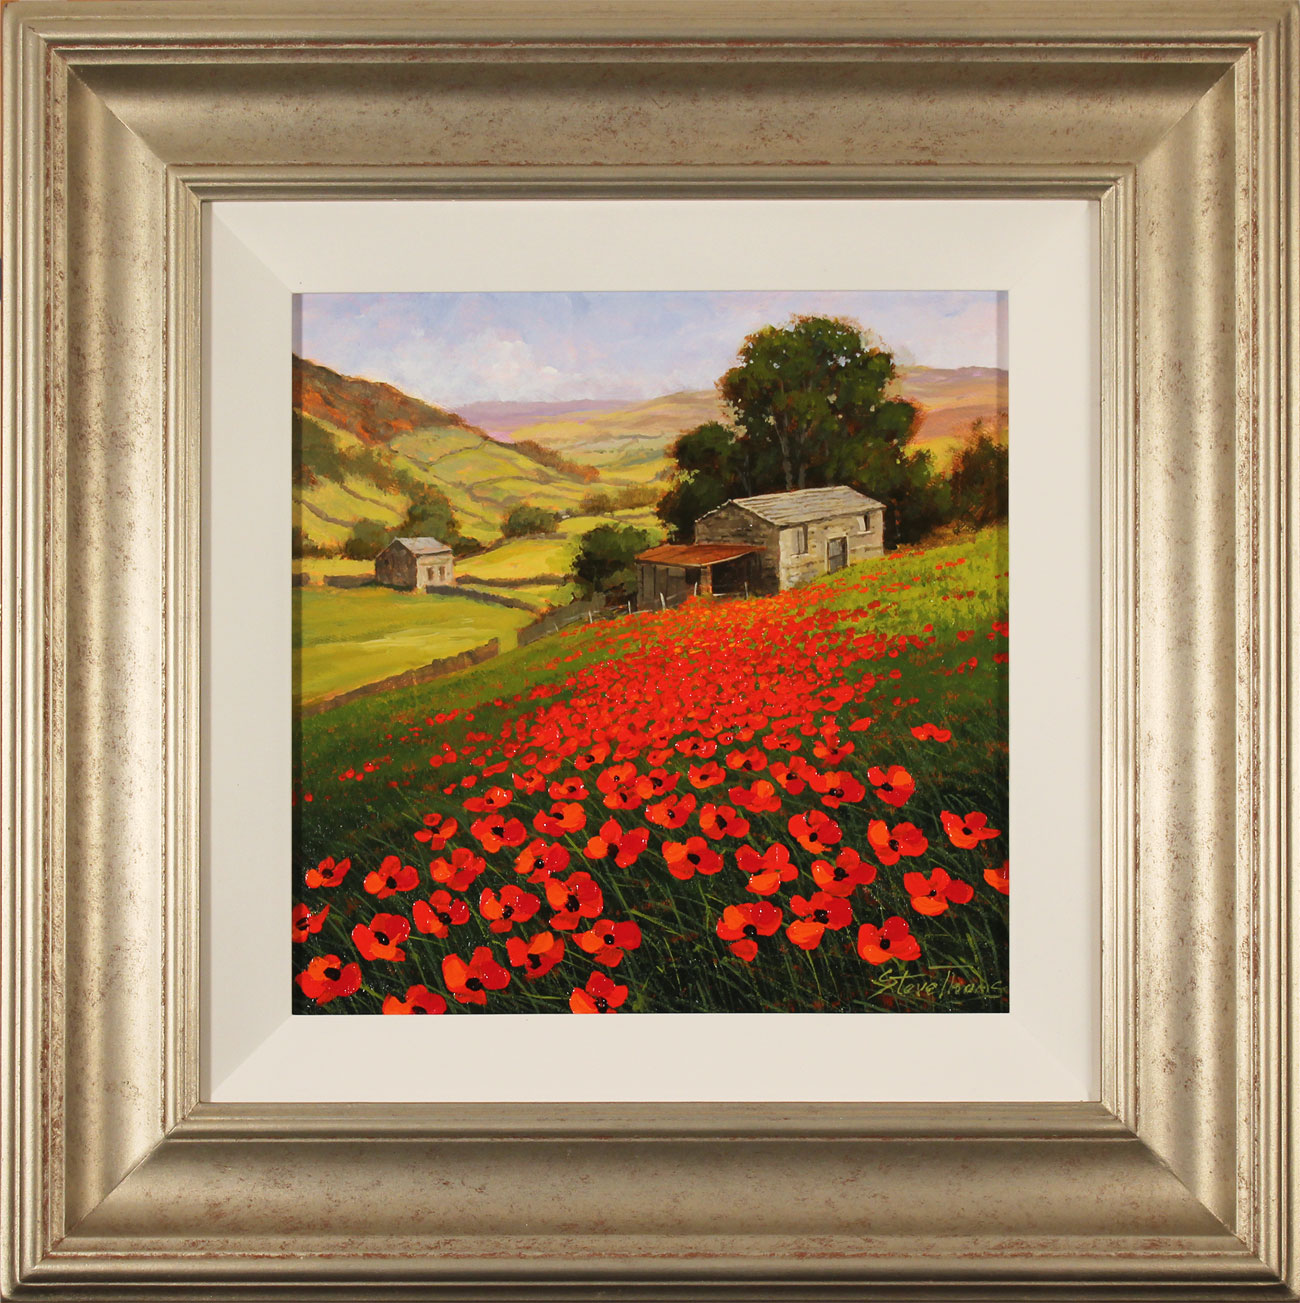 Steve Thoms, Original oil painting on panel, Yorkshire Poppies. Click to enlarge